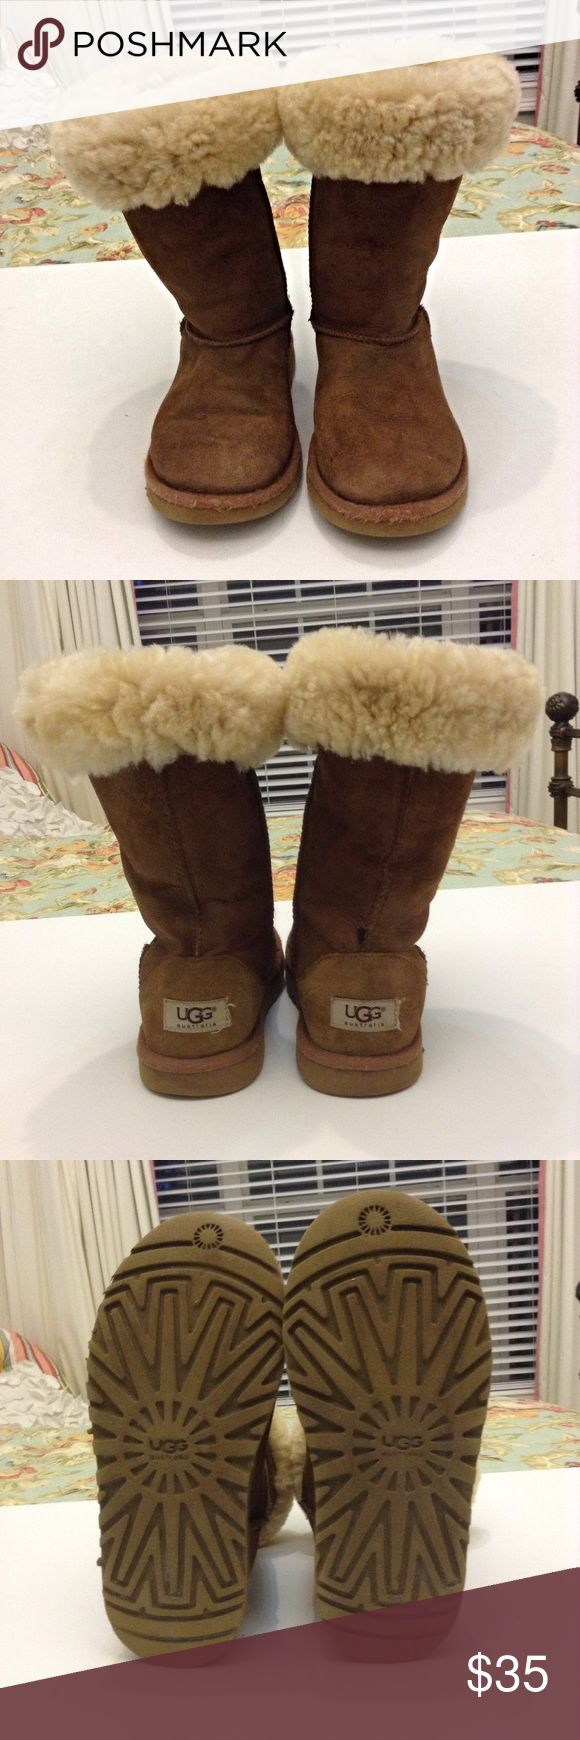 Girl's Ugg Boots Sheepskin lined and in good condition, the only flaw is a little spot on the back of the right shoe. UGG Shoes Winter & Rain Boots